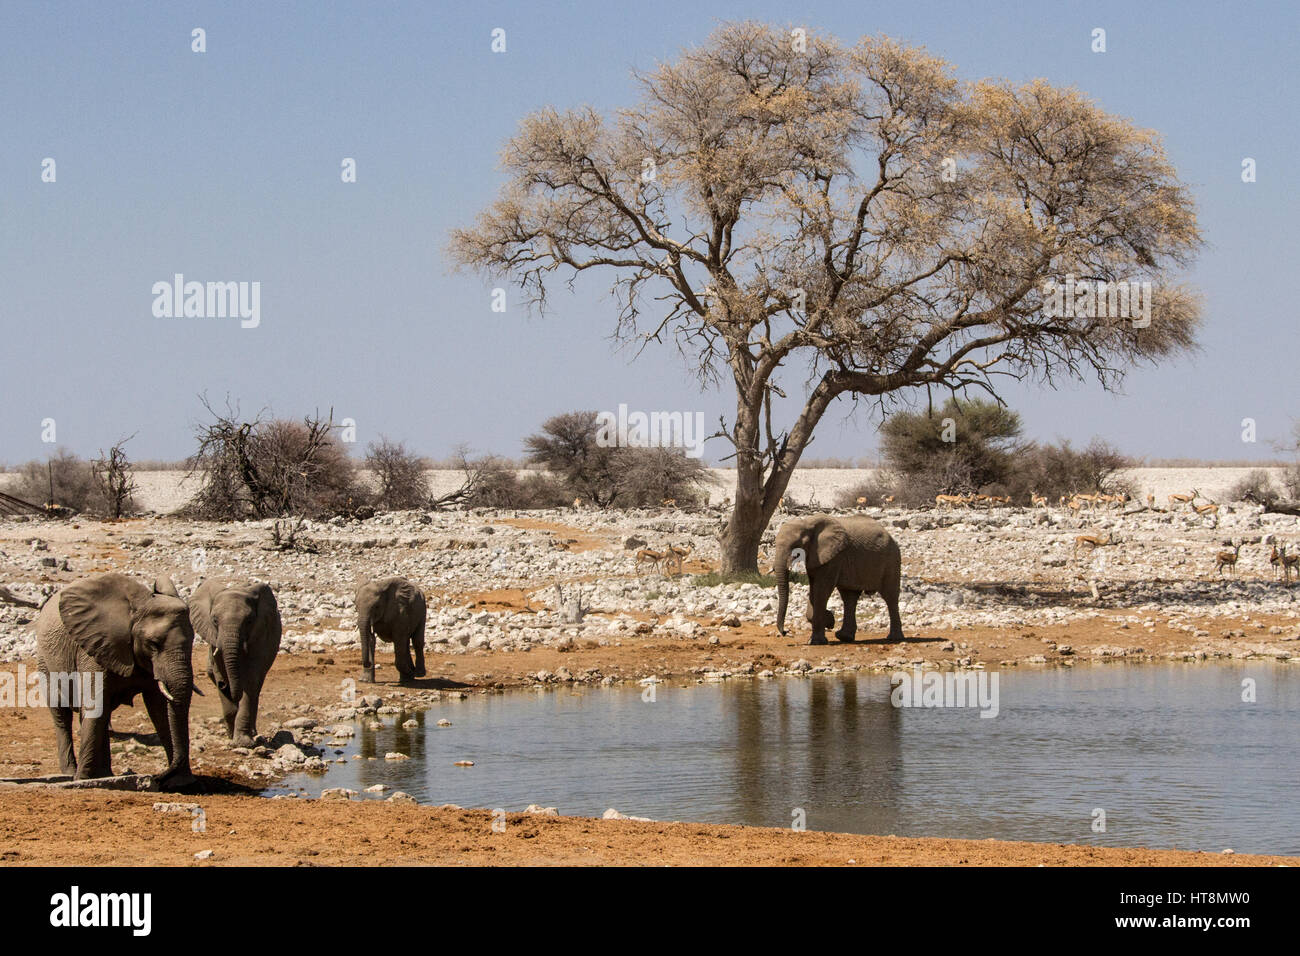 The first elephants of a herd arrive at Okaukuejo water hole. - Stock Image